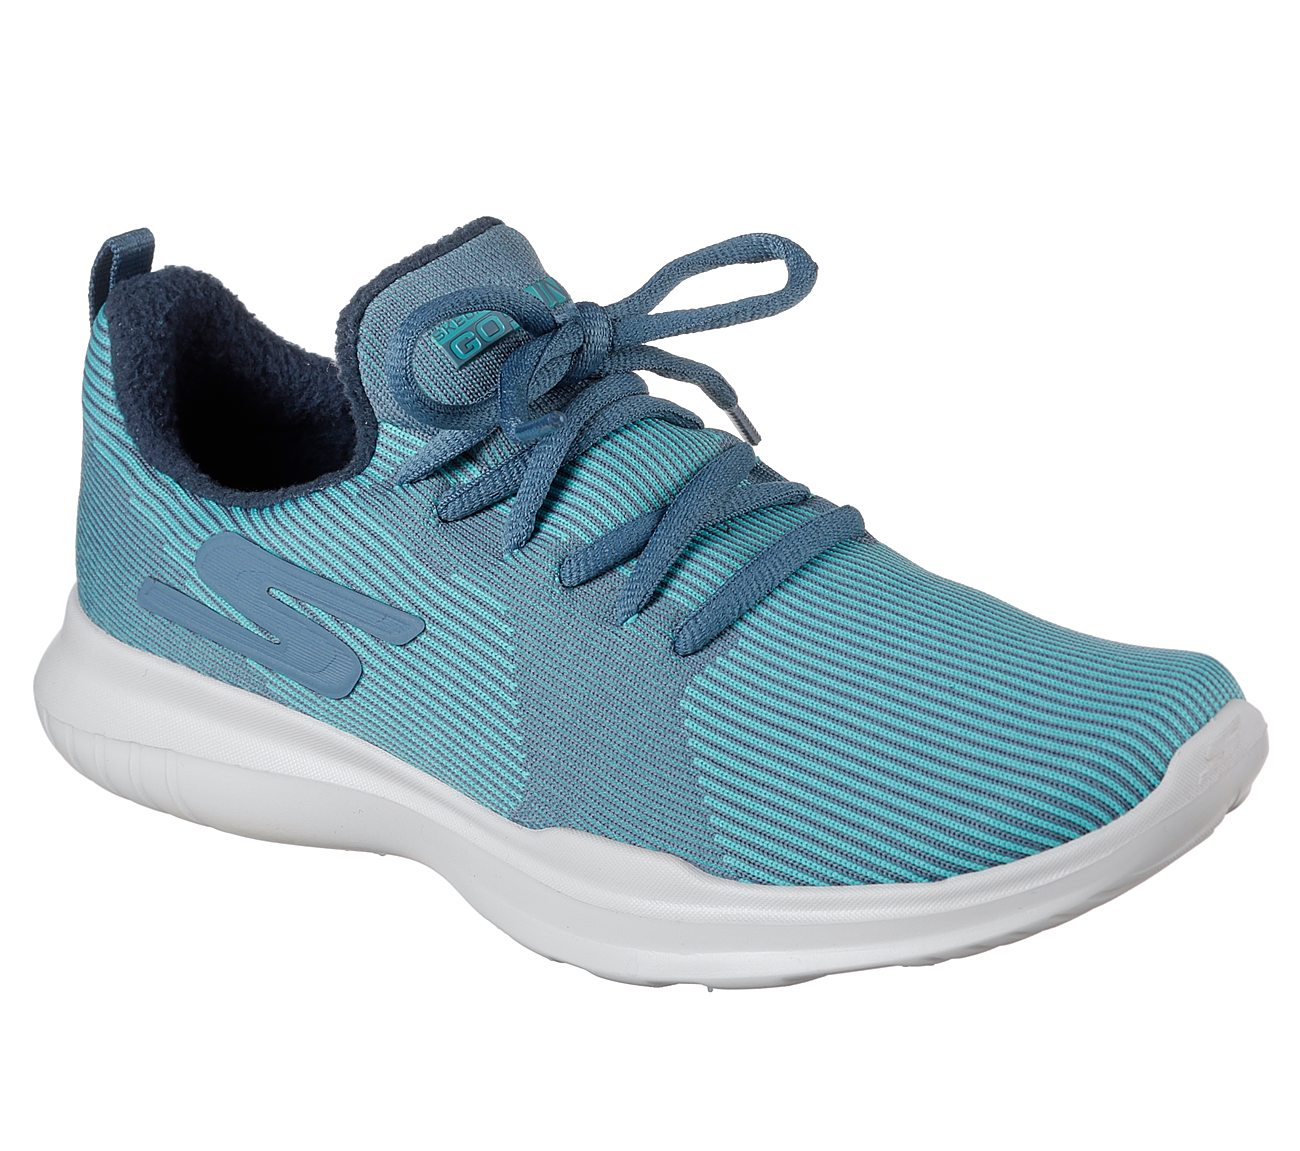 4ad763c52420 Buy SKECHERS Skechers GOrun Mojo - GOtherm 360 Running Shoes Shoes ...